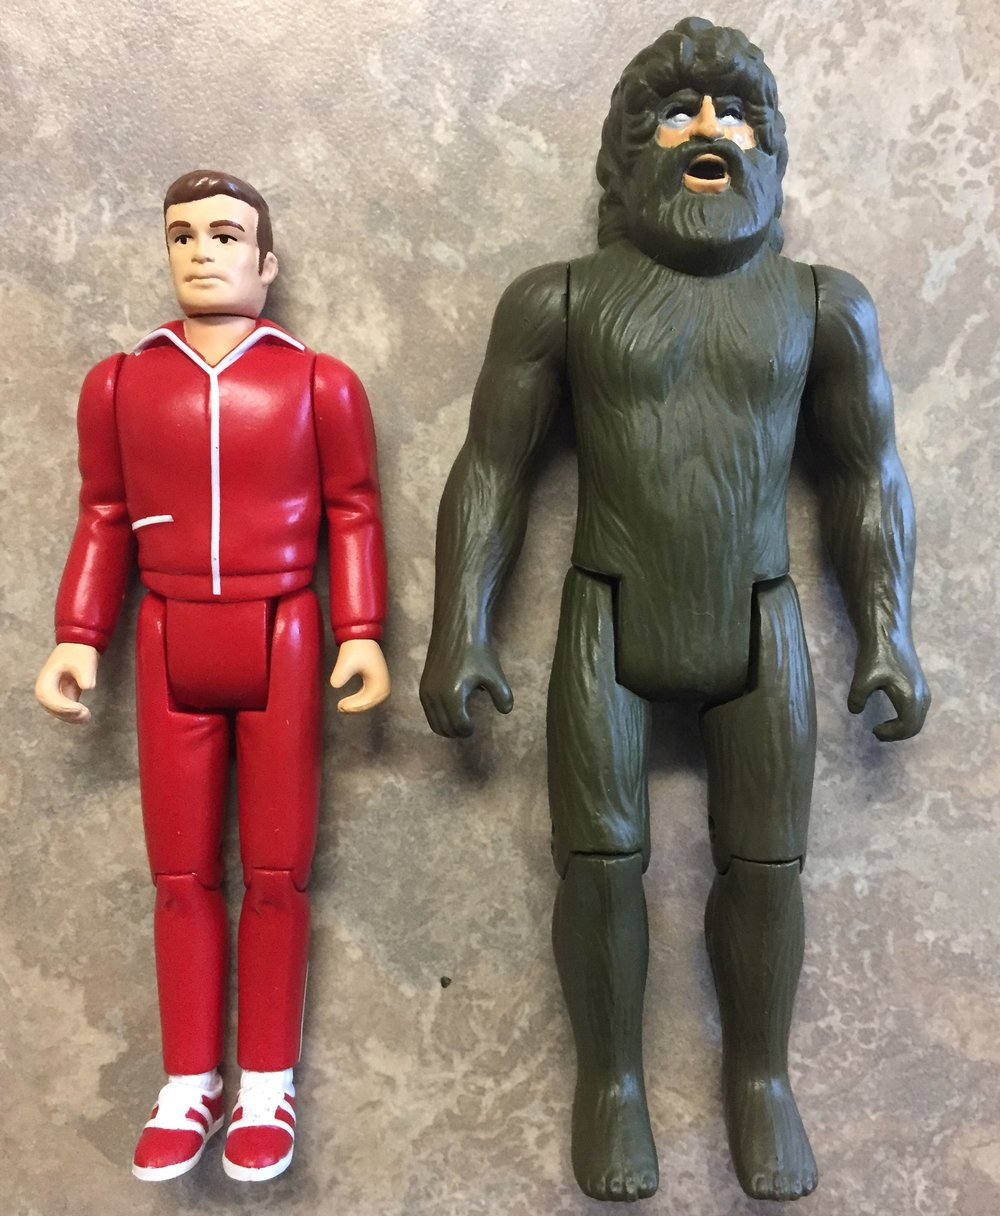 Here Is The Zica Figure Pictured Beside The Retro Styled Steve Austin Six Million Dollar Man And Stands Considerably Taller And Bulkier Which Is A Nice